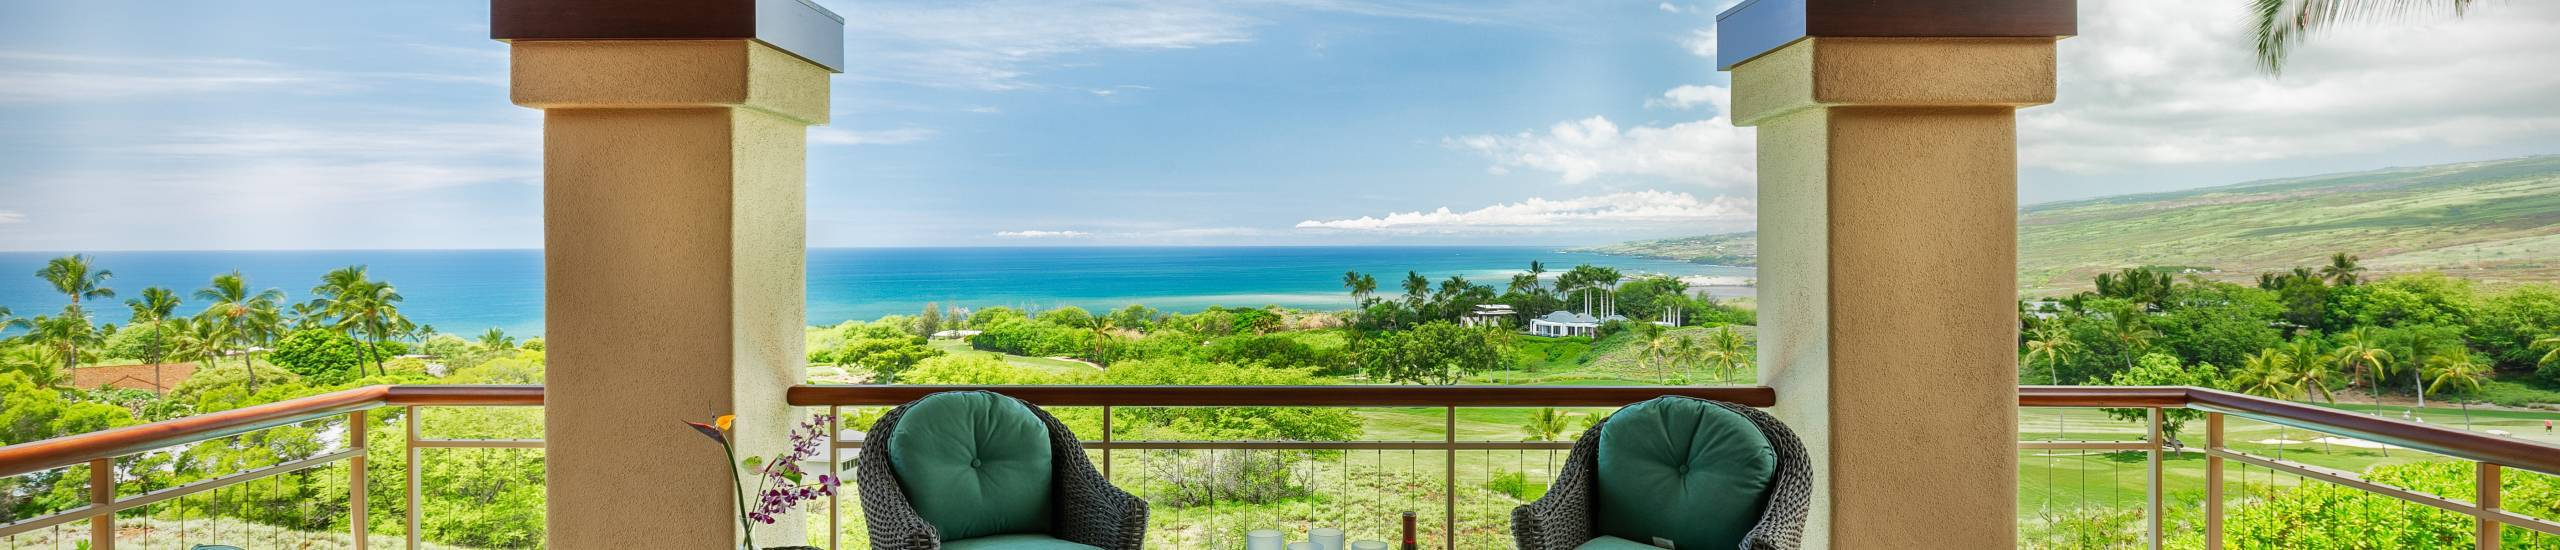 Mauna Kea Private Home Lanai View